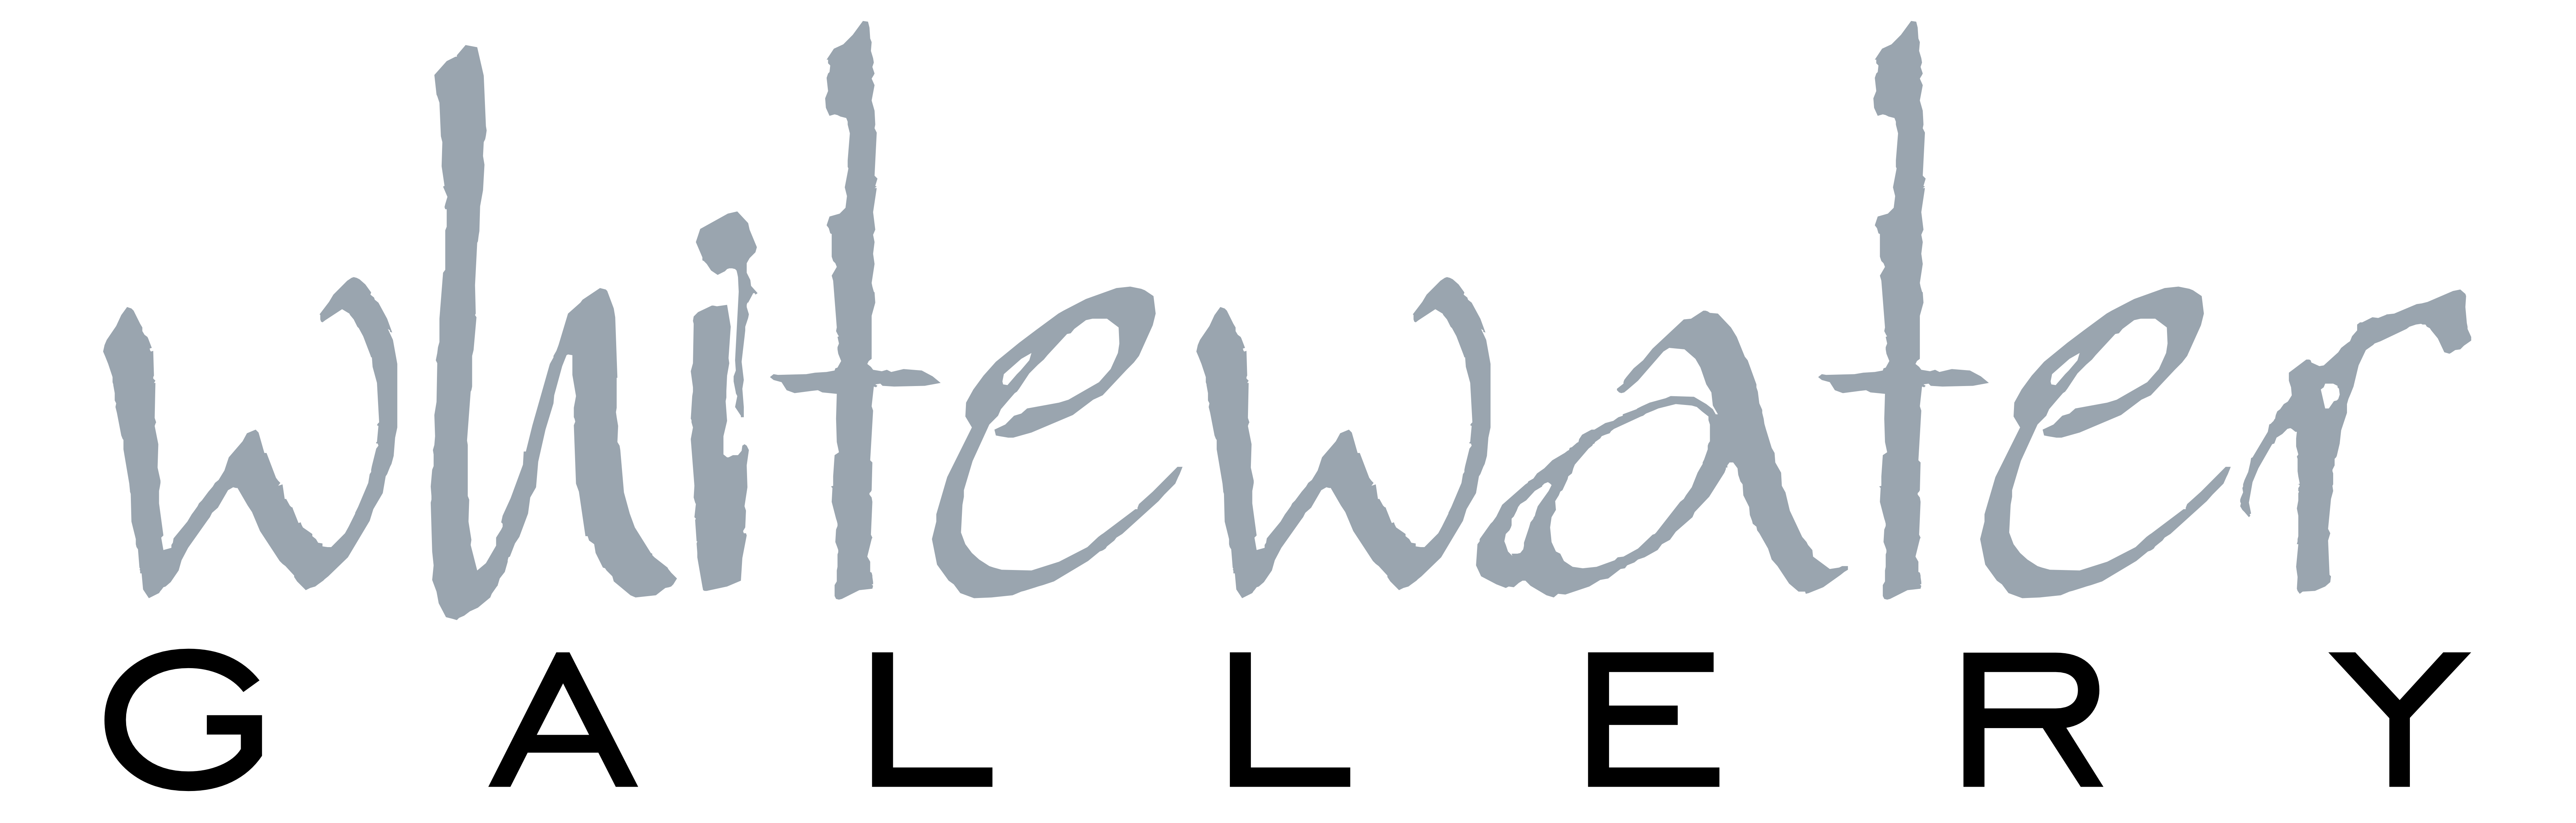 Whitewater Gallery company logo